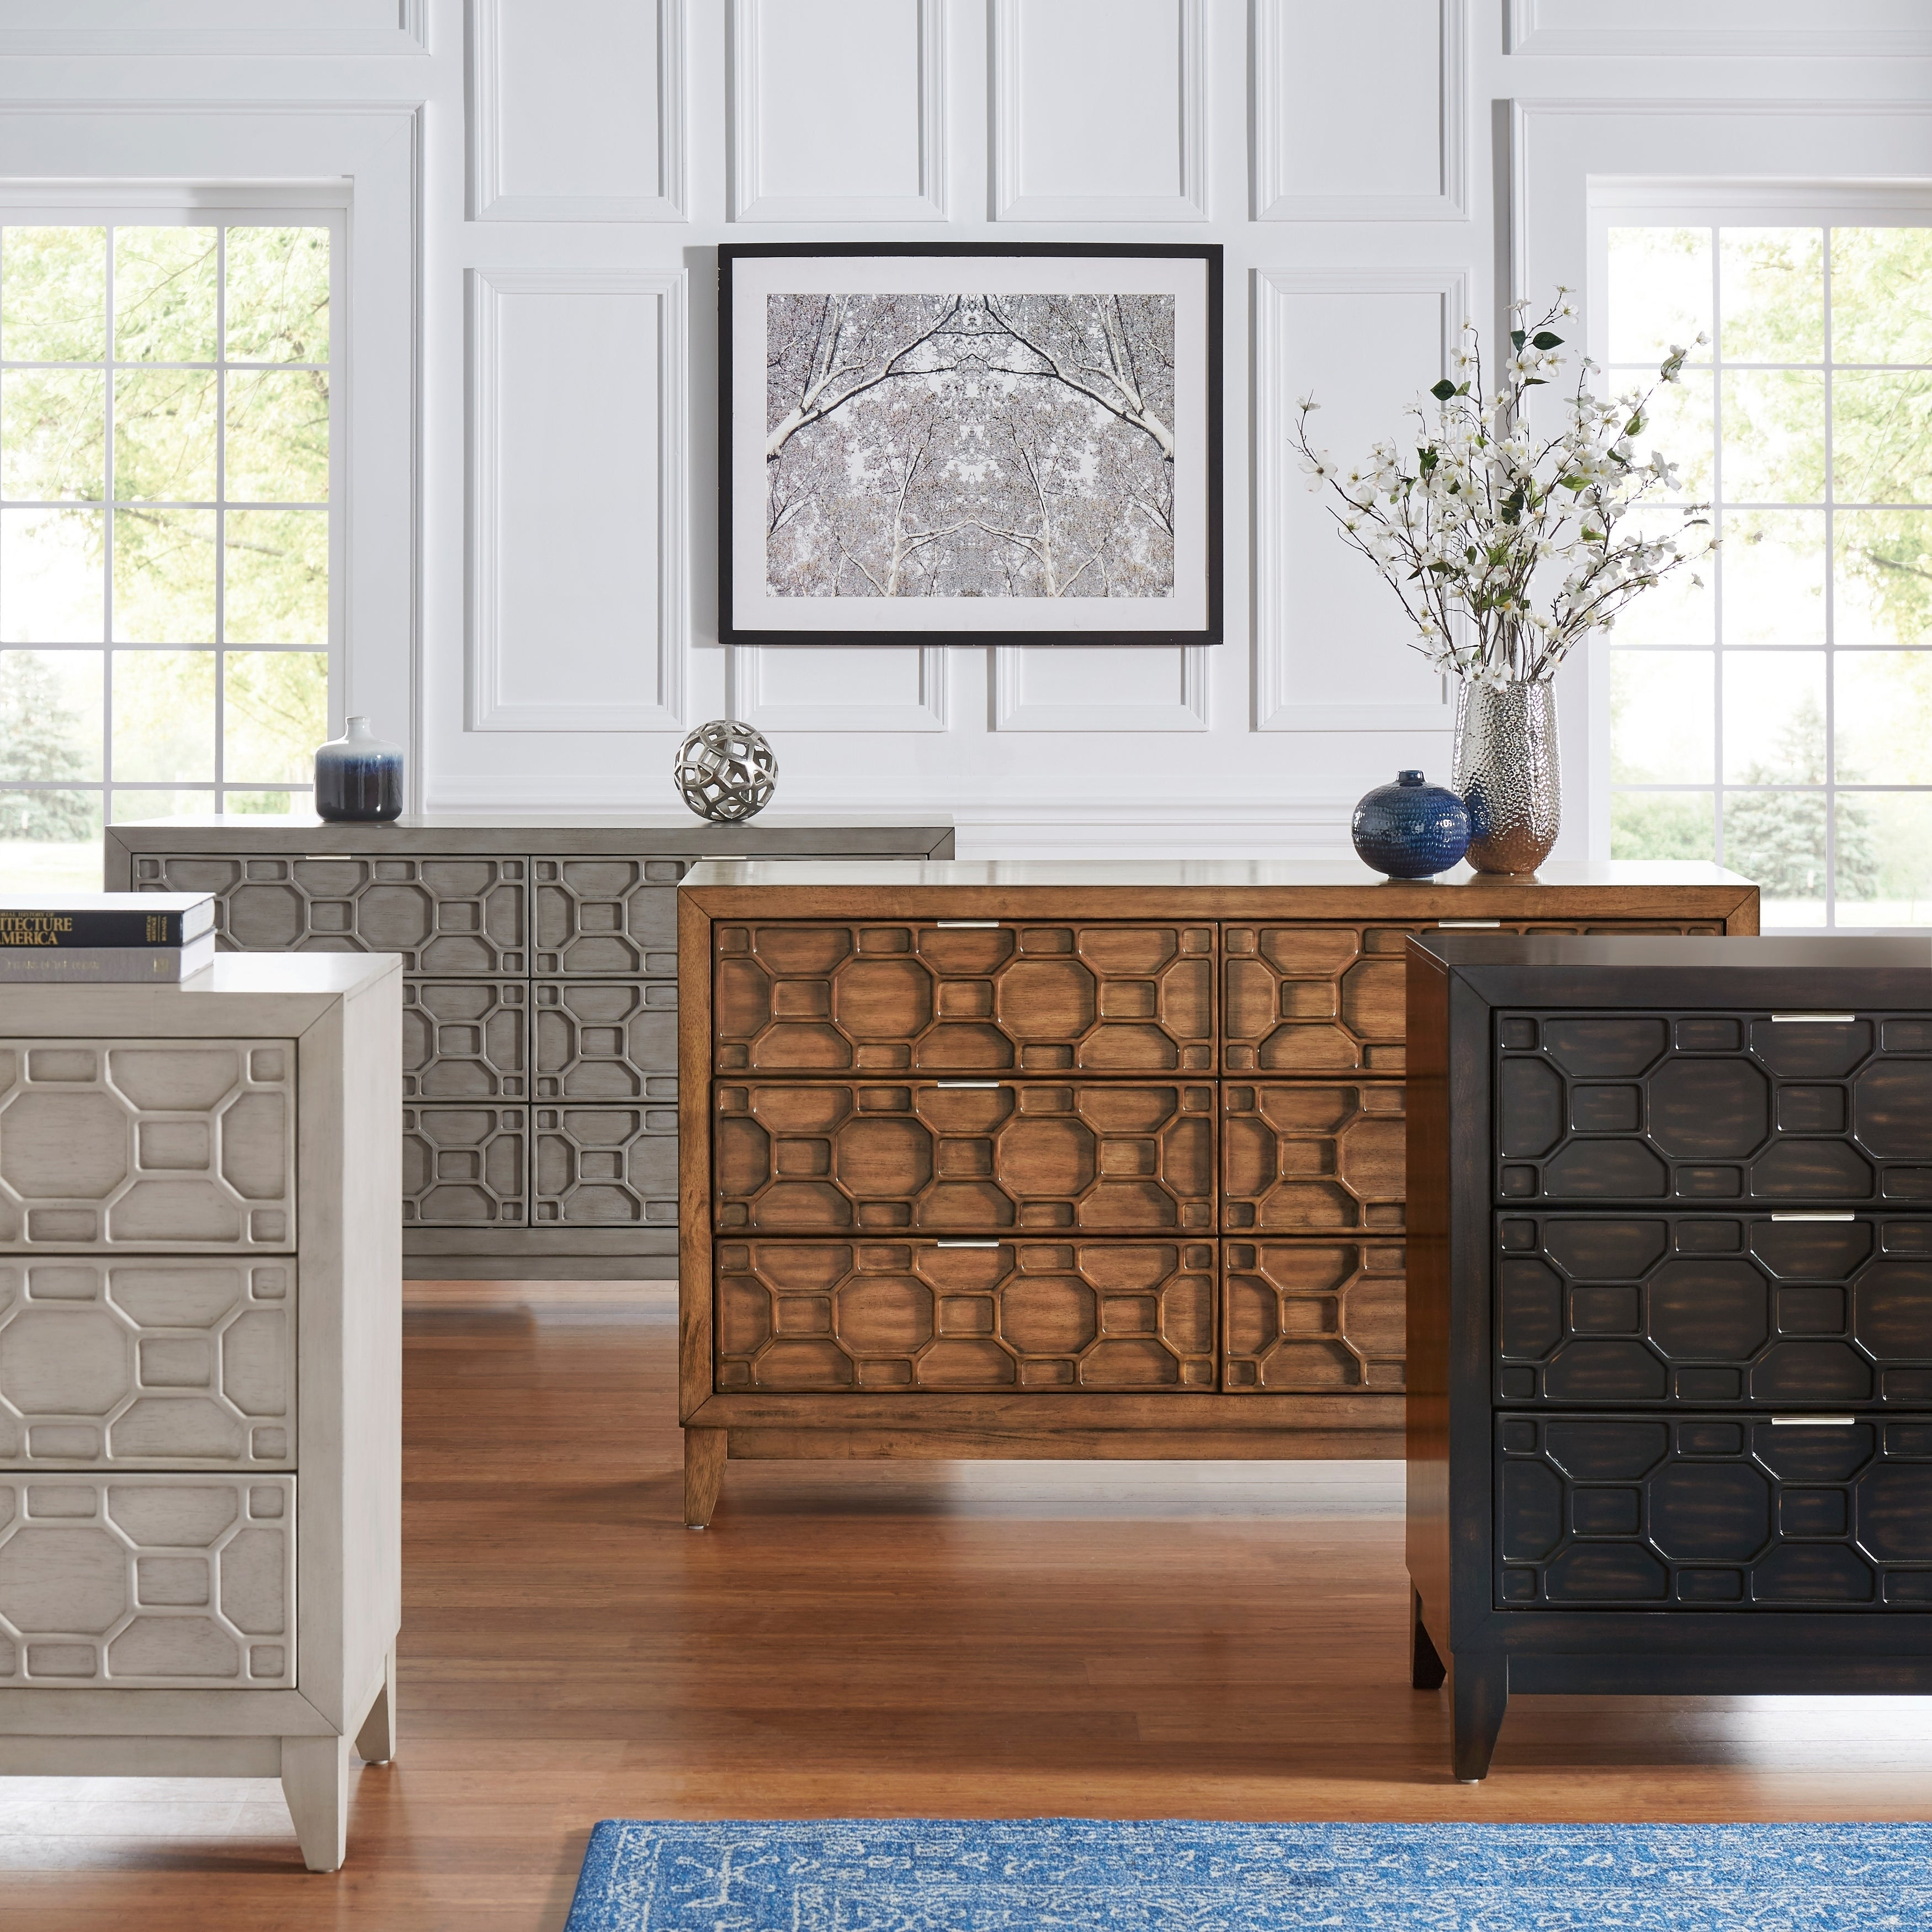 Buy Dressers & Chests Online at Overstock | Our Best Bedroom ... on house design, house elevations, house building, house construction, house layout, house structure, house models, house painting, house clip art, house rendering, house drawings, house framing, house plants, house blueprints, house roof, house styles, house foundation, house types, house maps, house exterior,